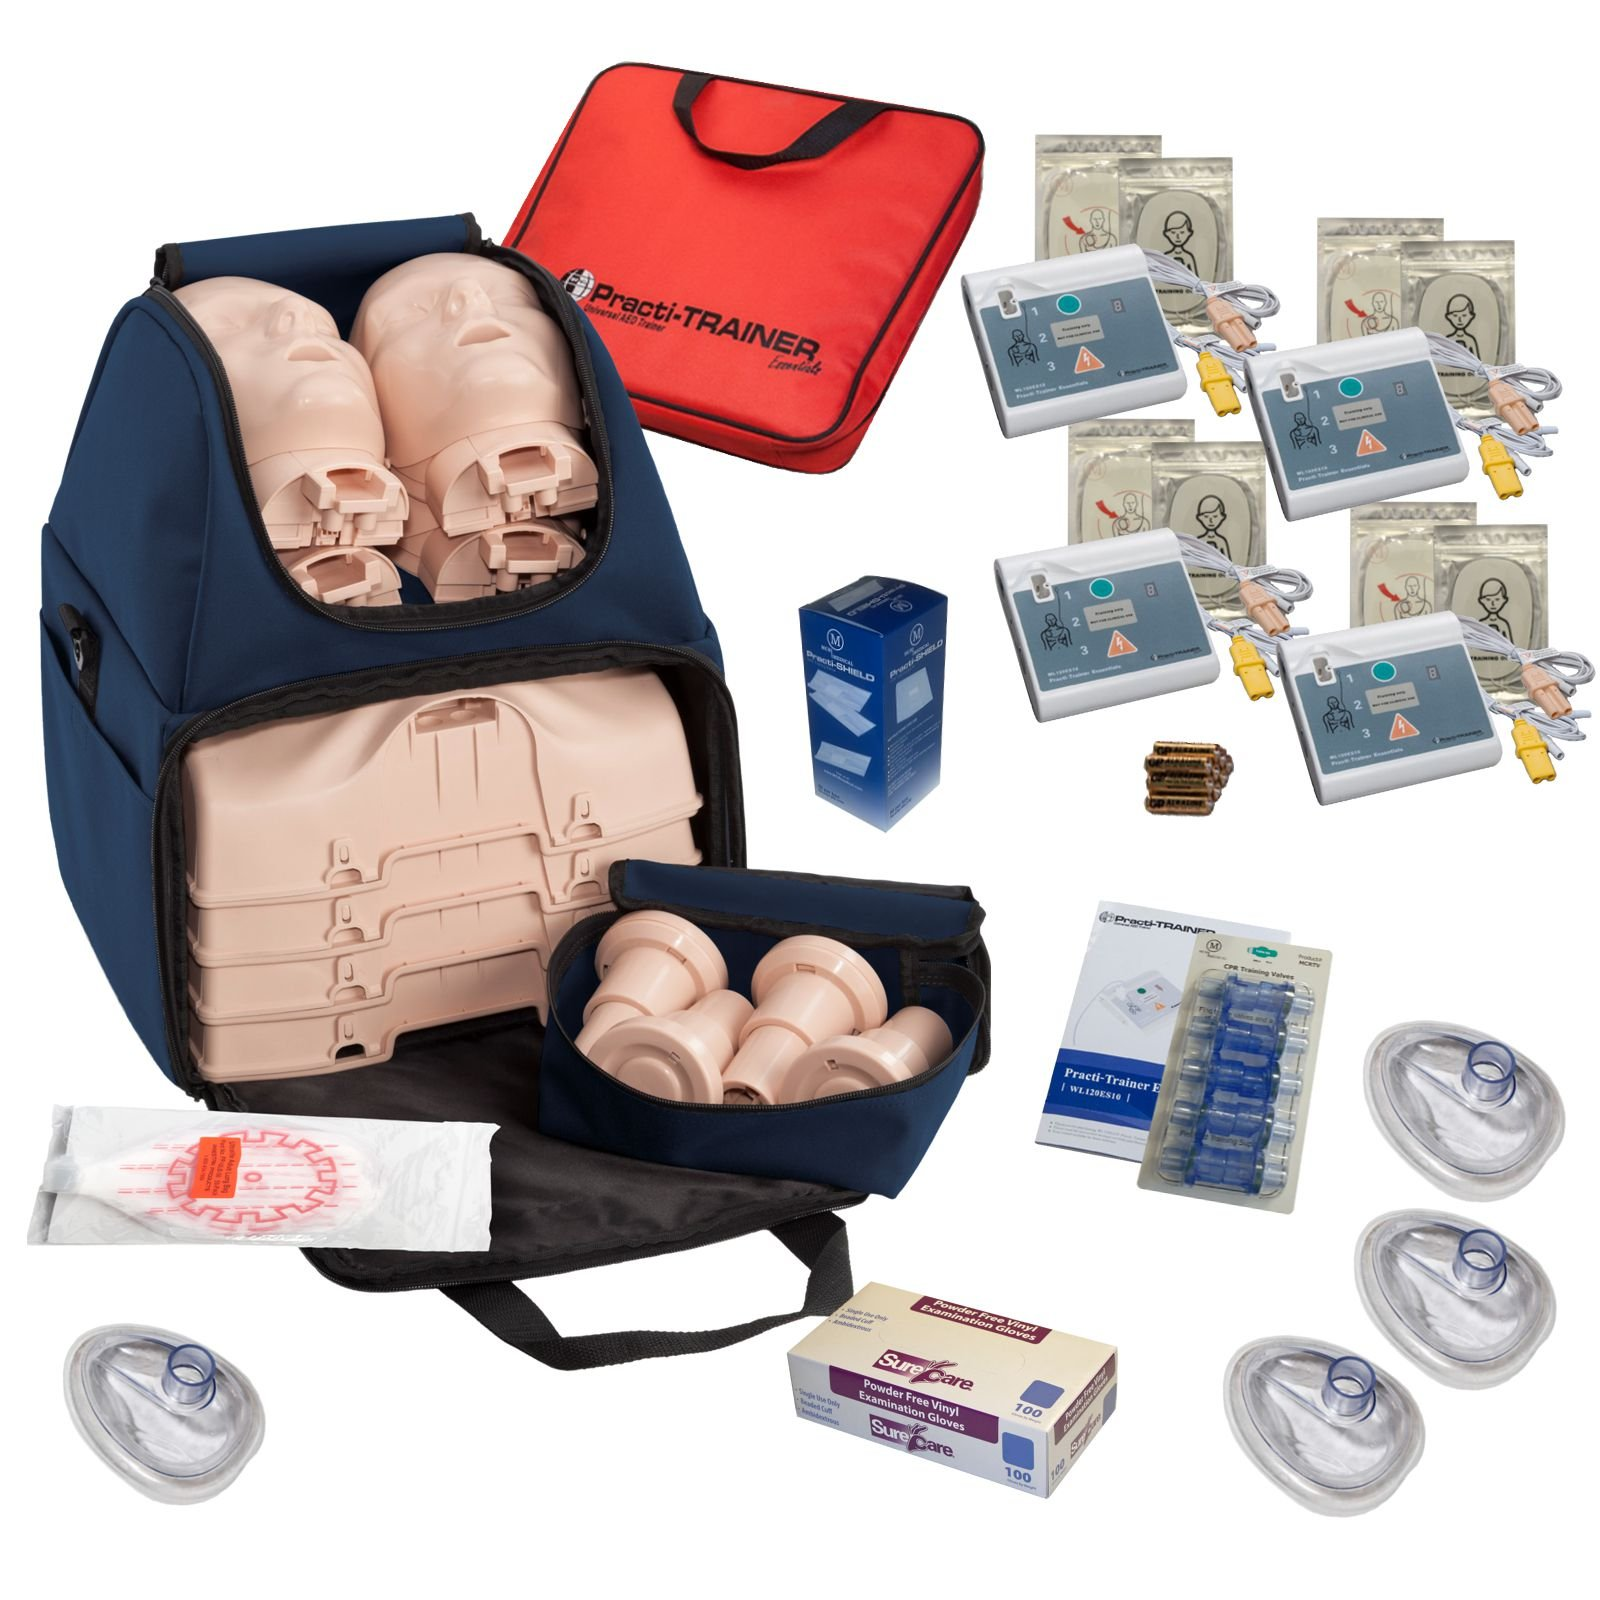 CPR Training Kit w Prestan Ultralite Manikins, WNL AED Trainers, & More by MCR Medical